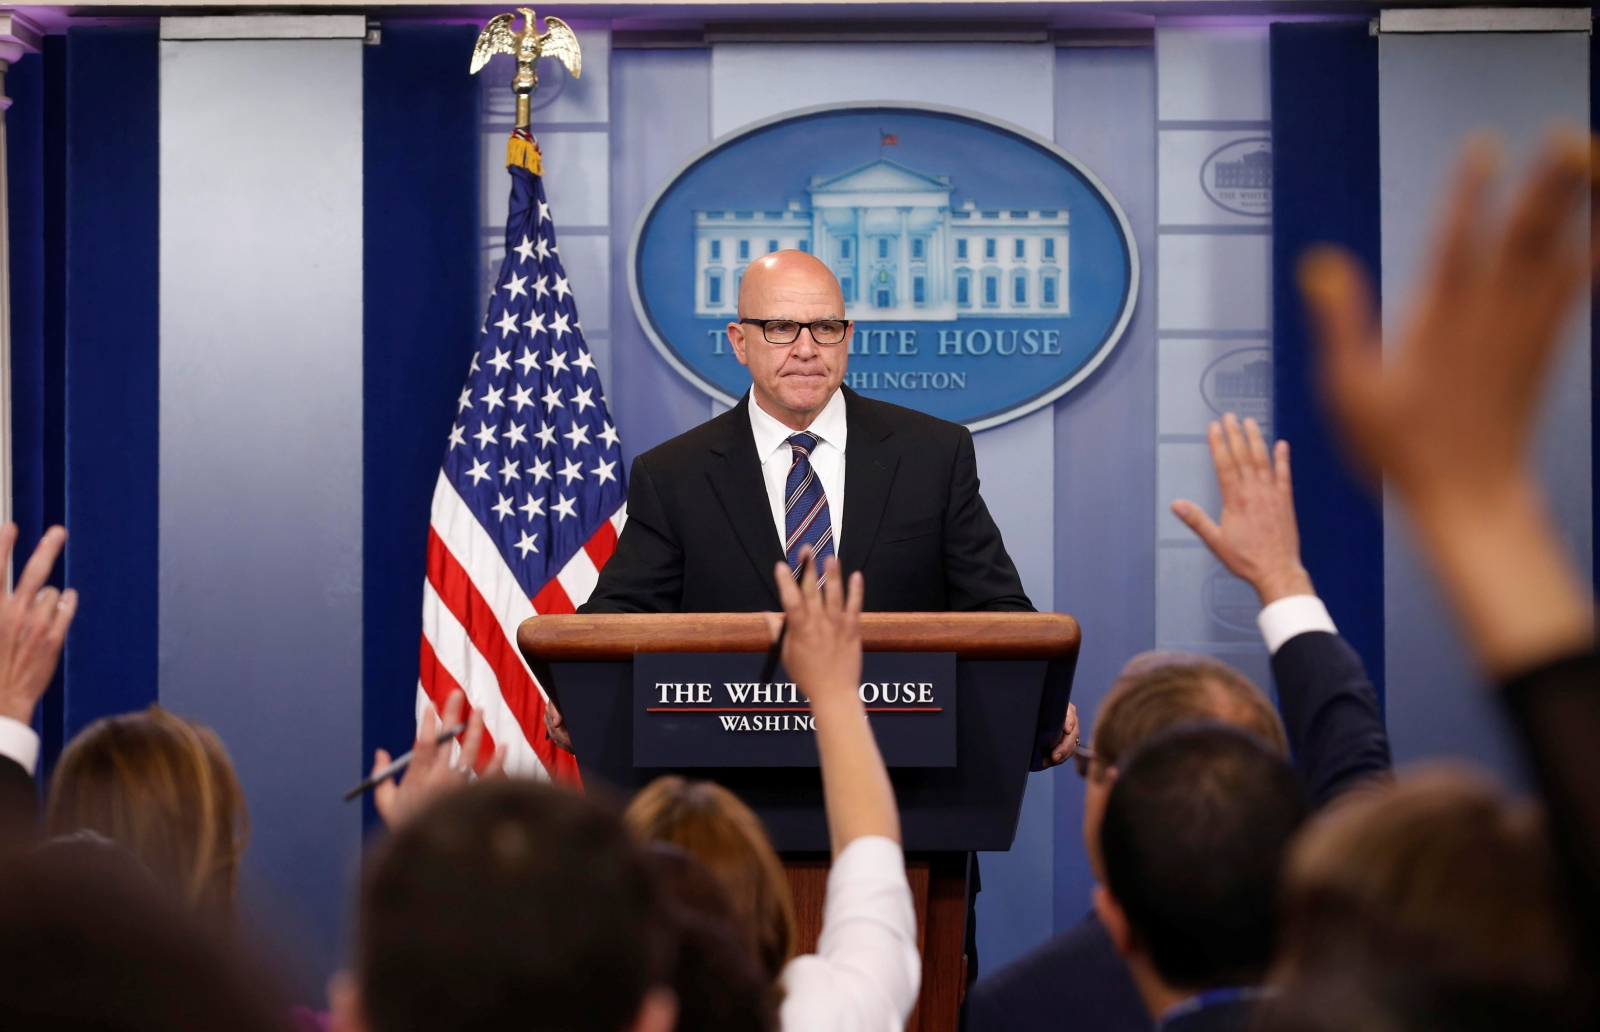 McMaster called Trump an